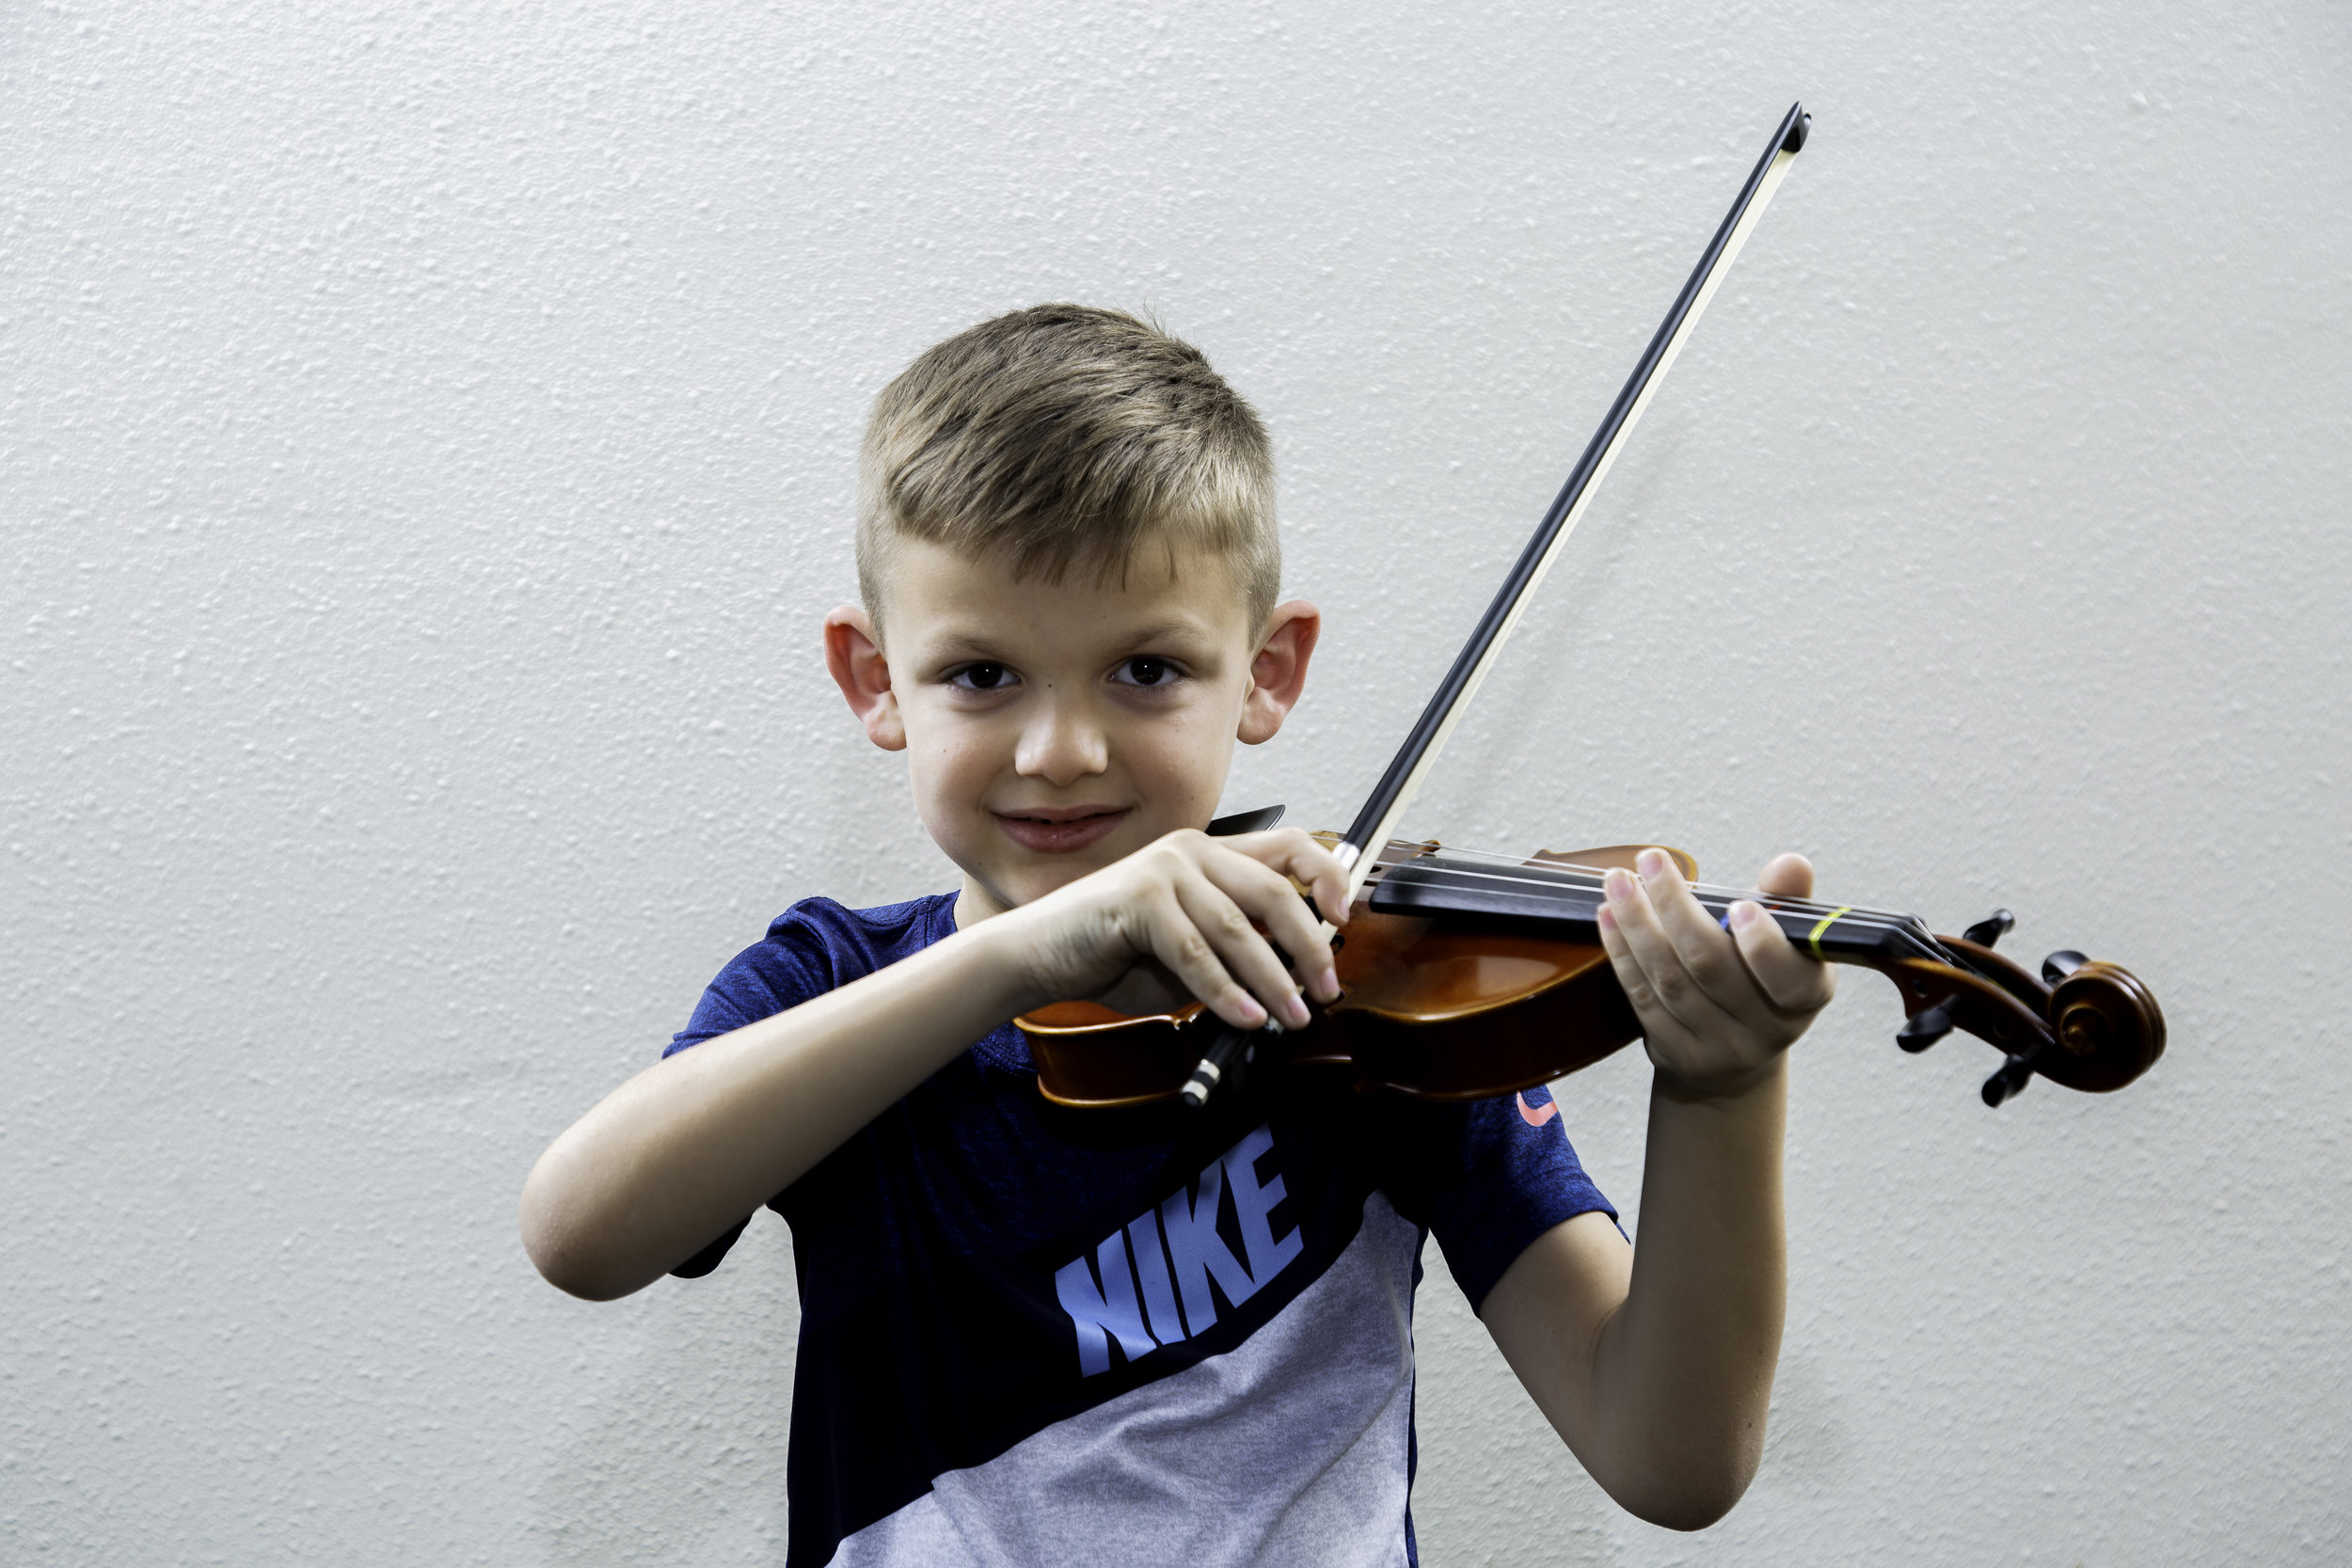 Learn how to play violin today!